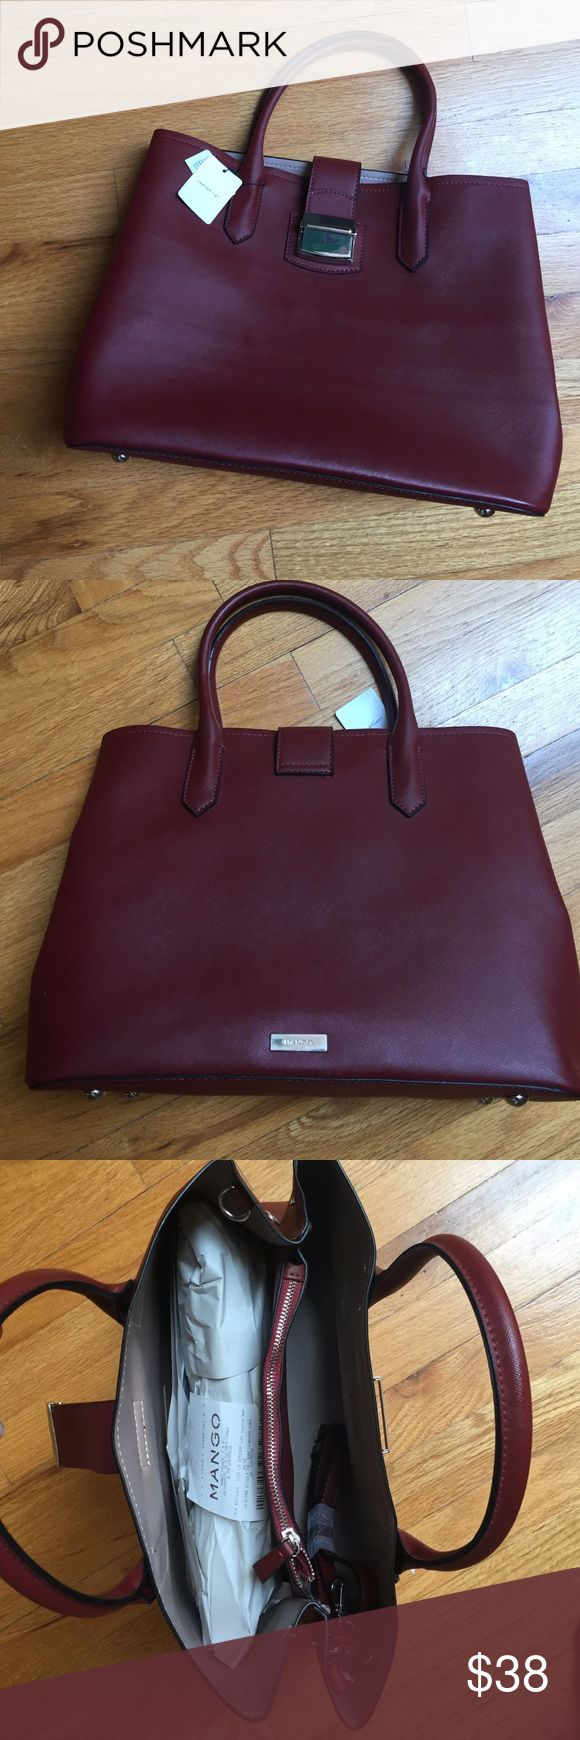 """NWT mango laptop hand bag Brand new, bought in paris, France mango bag,  color merlot with cream interior, waterproof material, big enough to fit 13"""" laptop, wallet pouch attached inside and comes with long strap to wear cross shoulder Mango Bags Laptop Bags"""